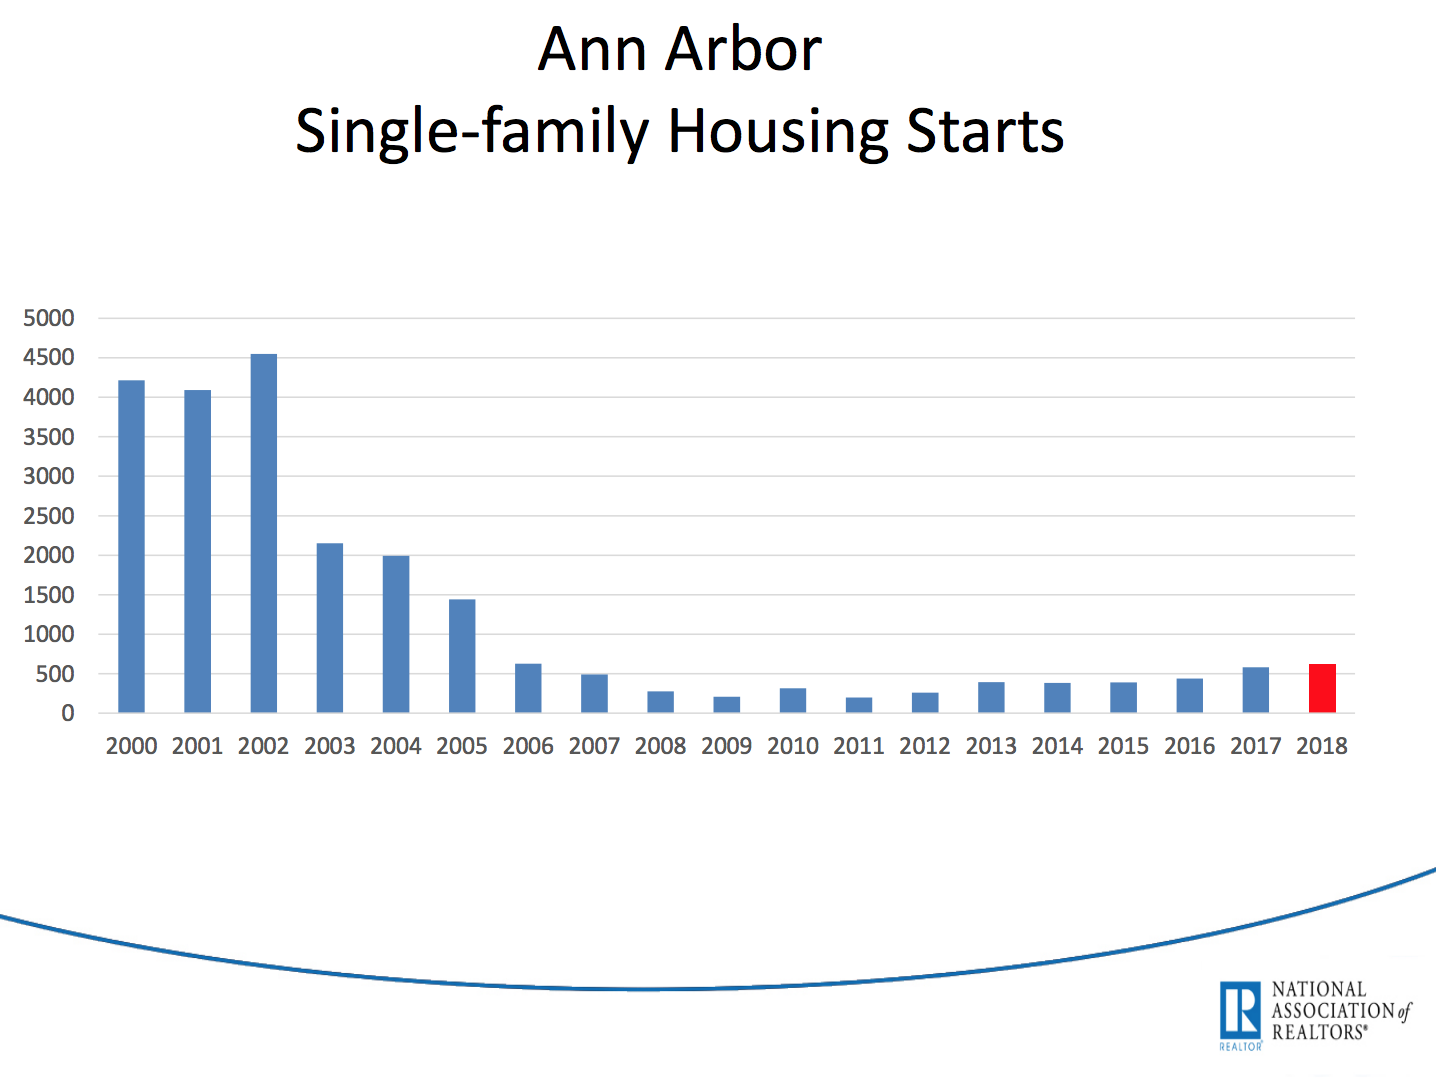 Single-family housing starts never really recovered from the housing crash of 2007-08